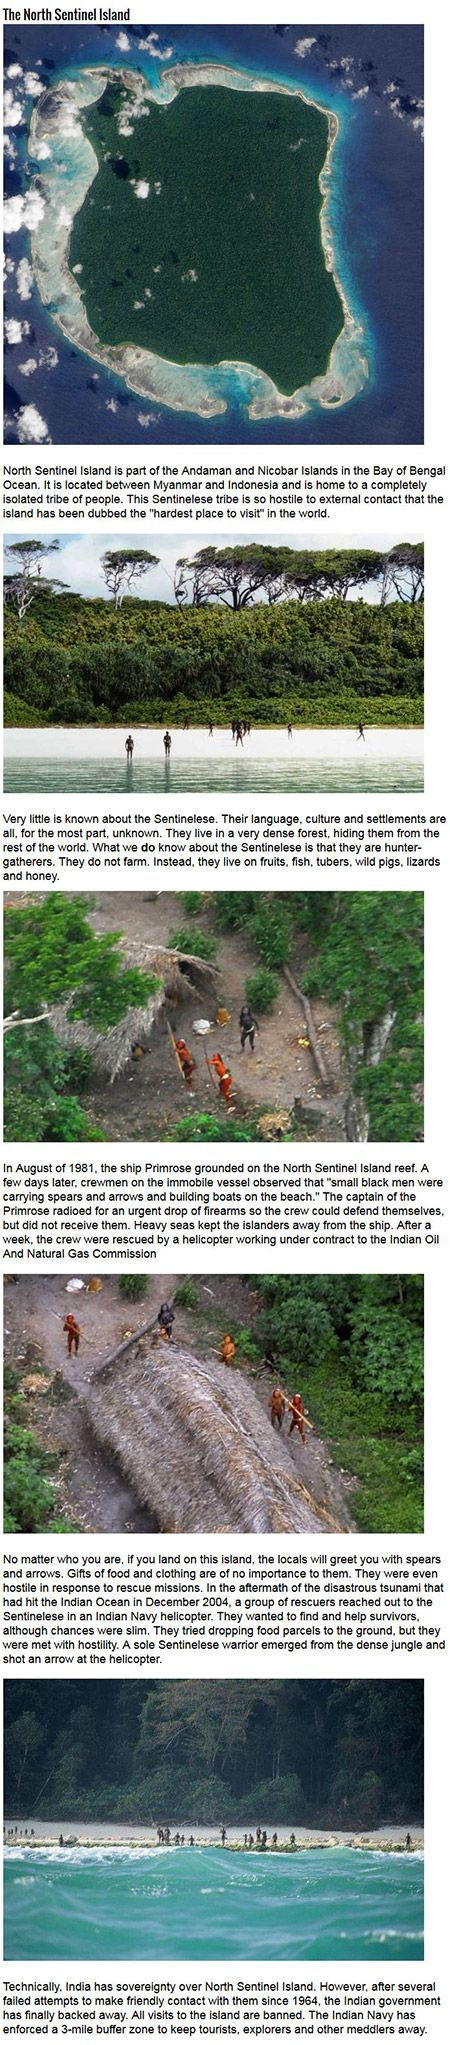 What Kind Of Animals Live On North Sentinel Island